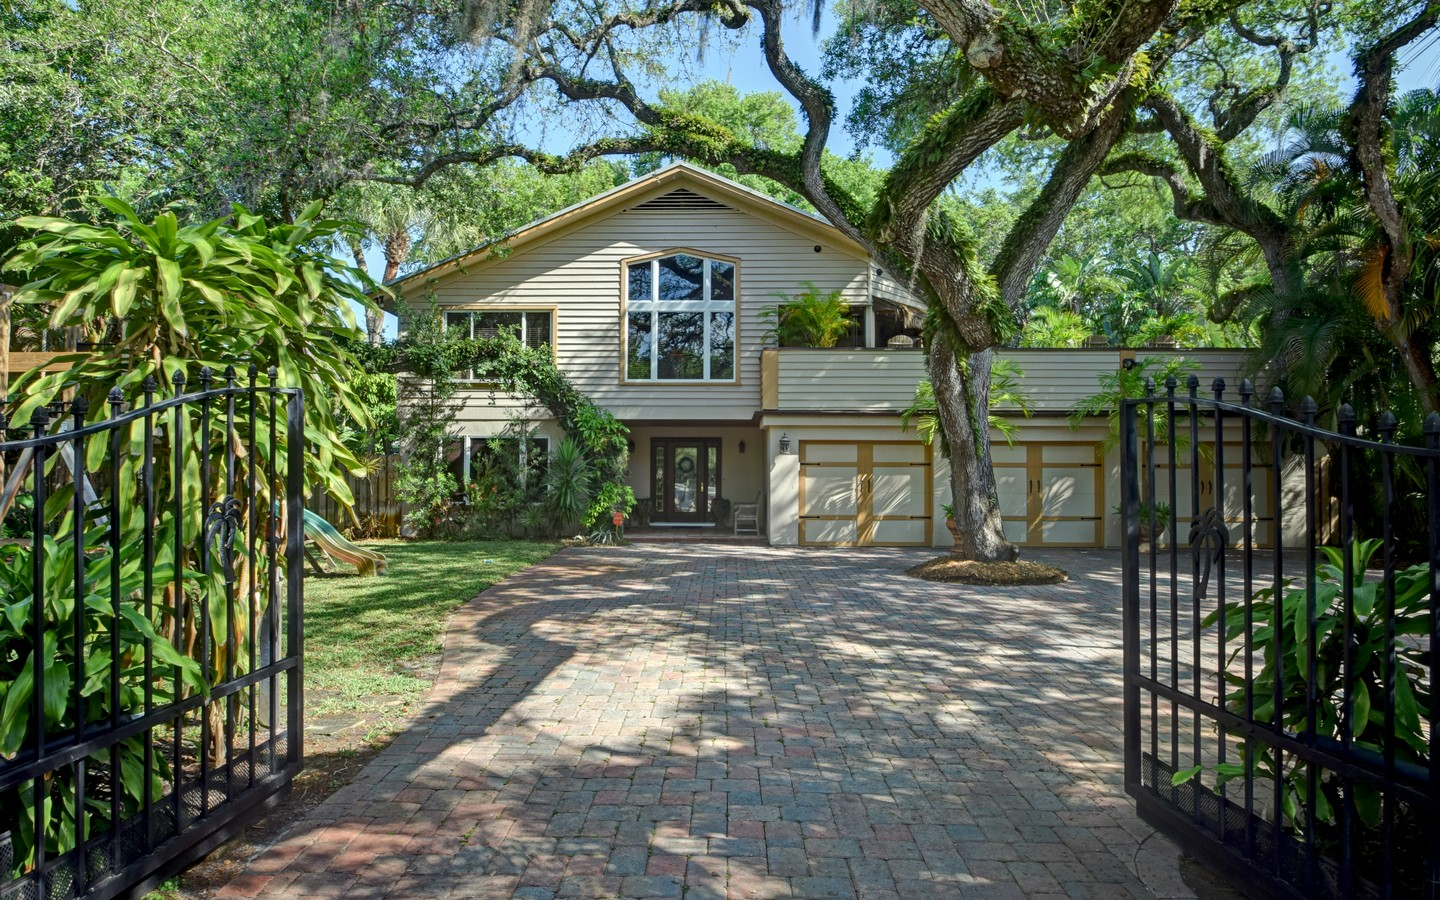 Single Family Home for Sale at Custom, Unique & Gated Oasis in Central Beach 535 Date Palm Rd Vero Beach, Florida, 32963 United States